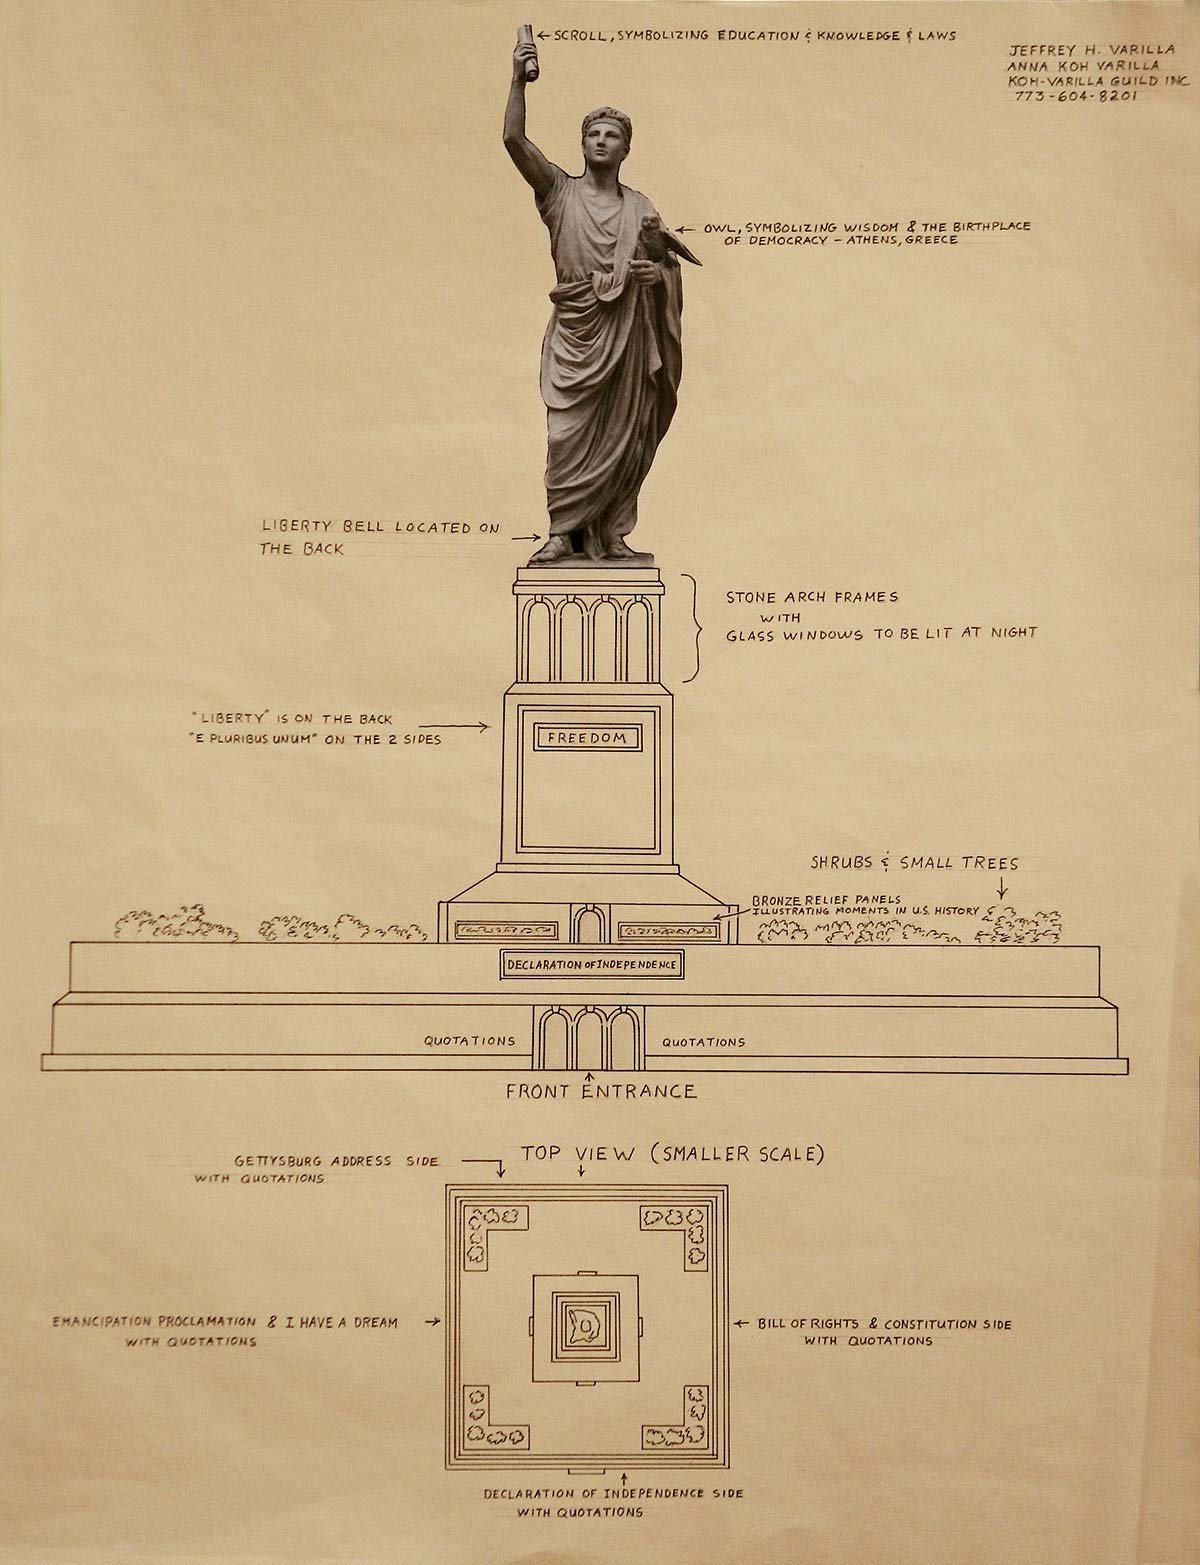 Diagram of Statue of Freedom with writings about statue features